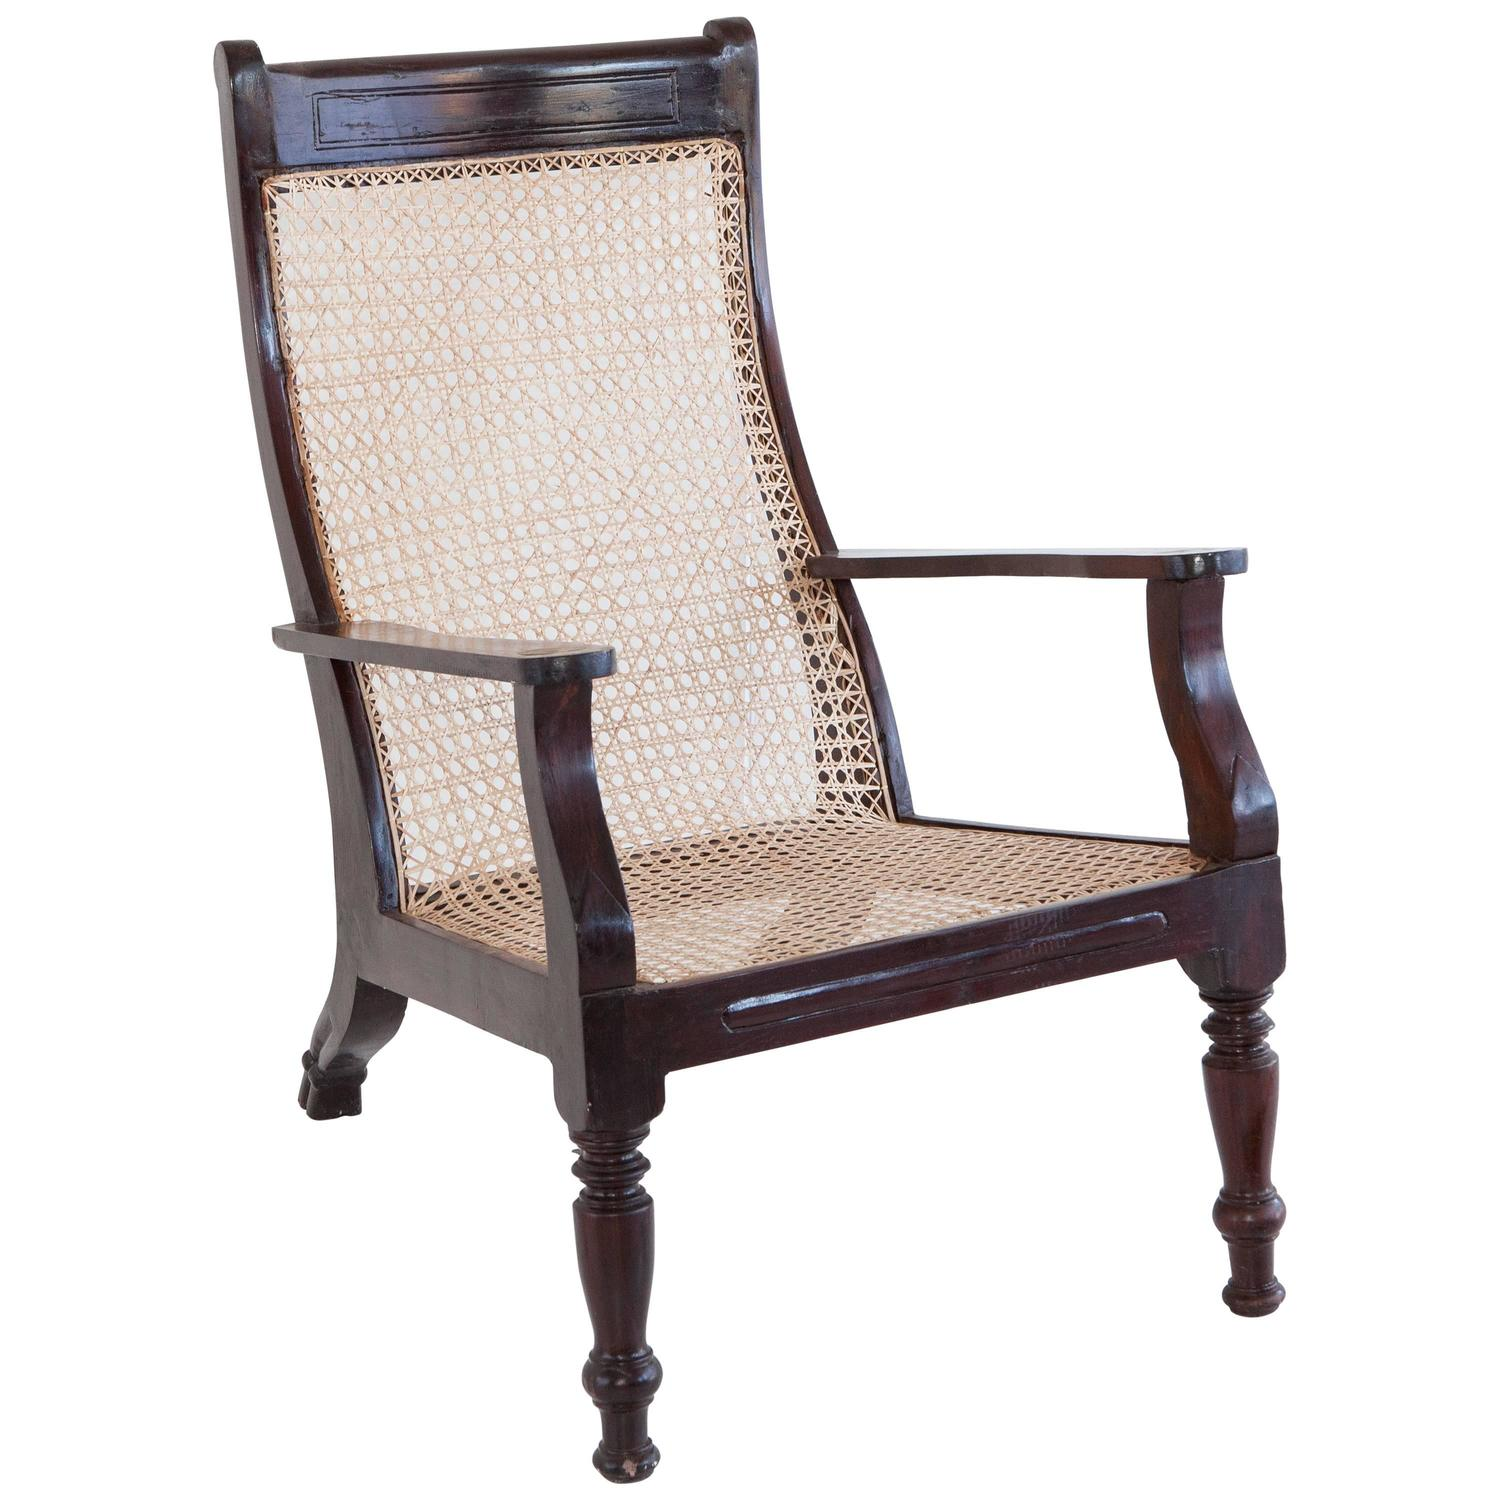 plantation style chairs chair cushion cover anglo indian at 1stdibs